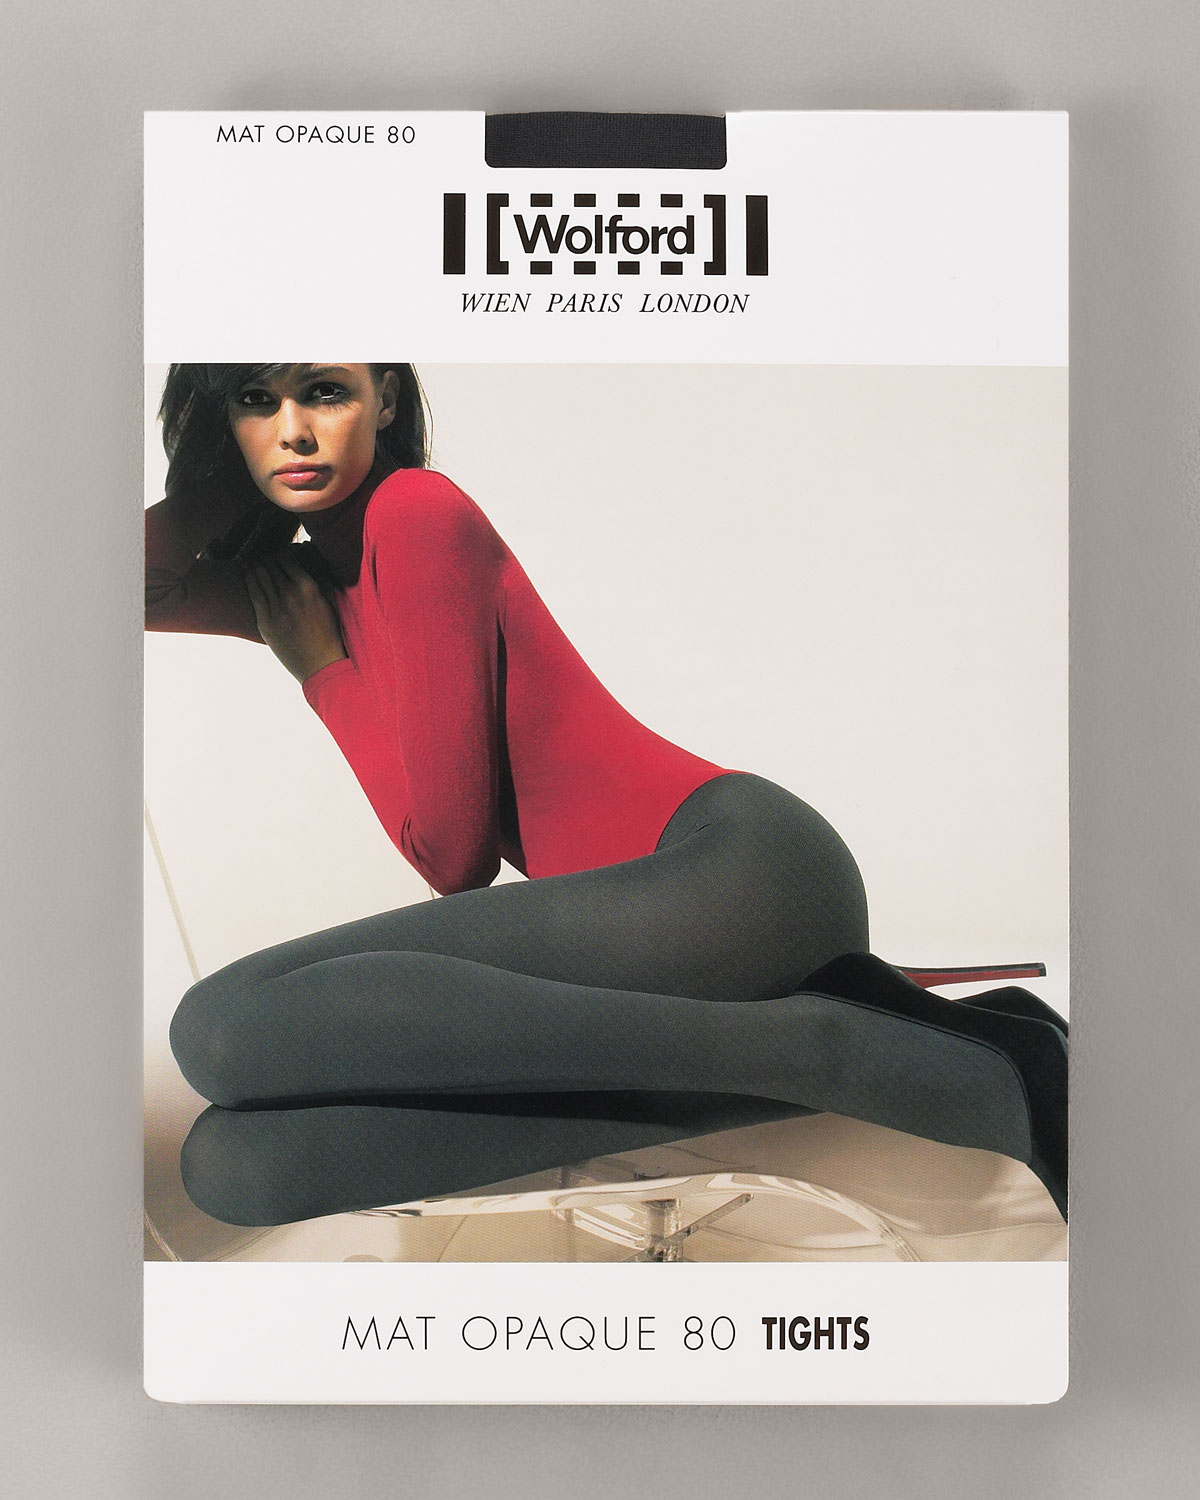 ea51f093d45 Wolford Matte Opaque 80 Tights in Black - Lyst